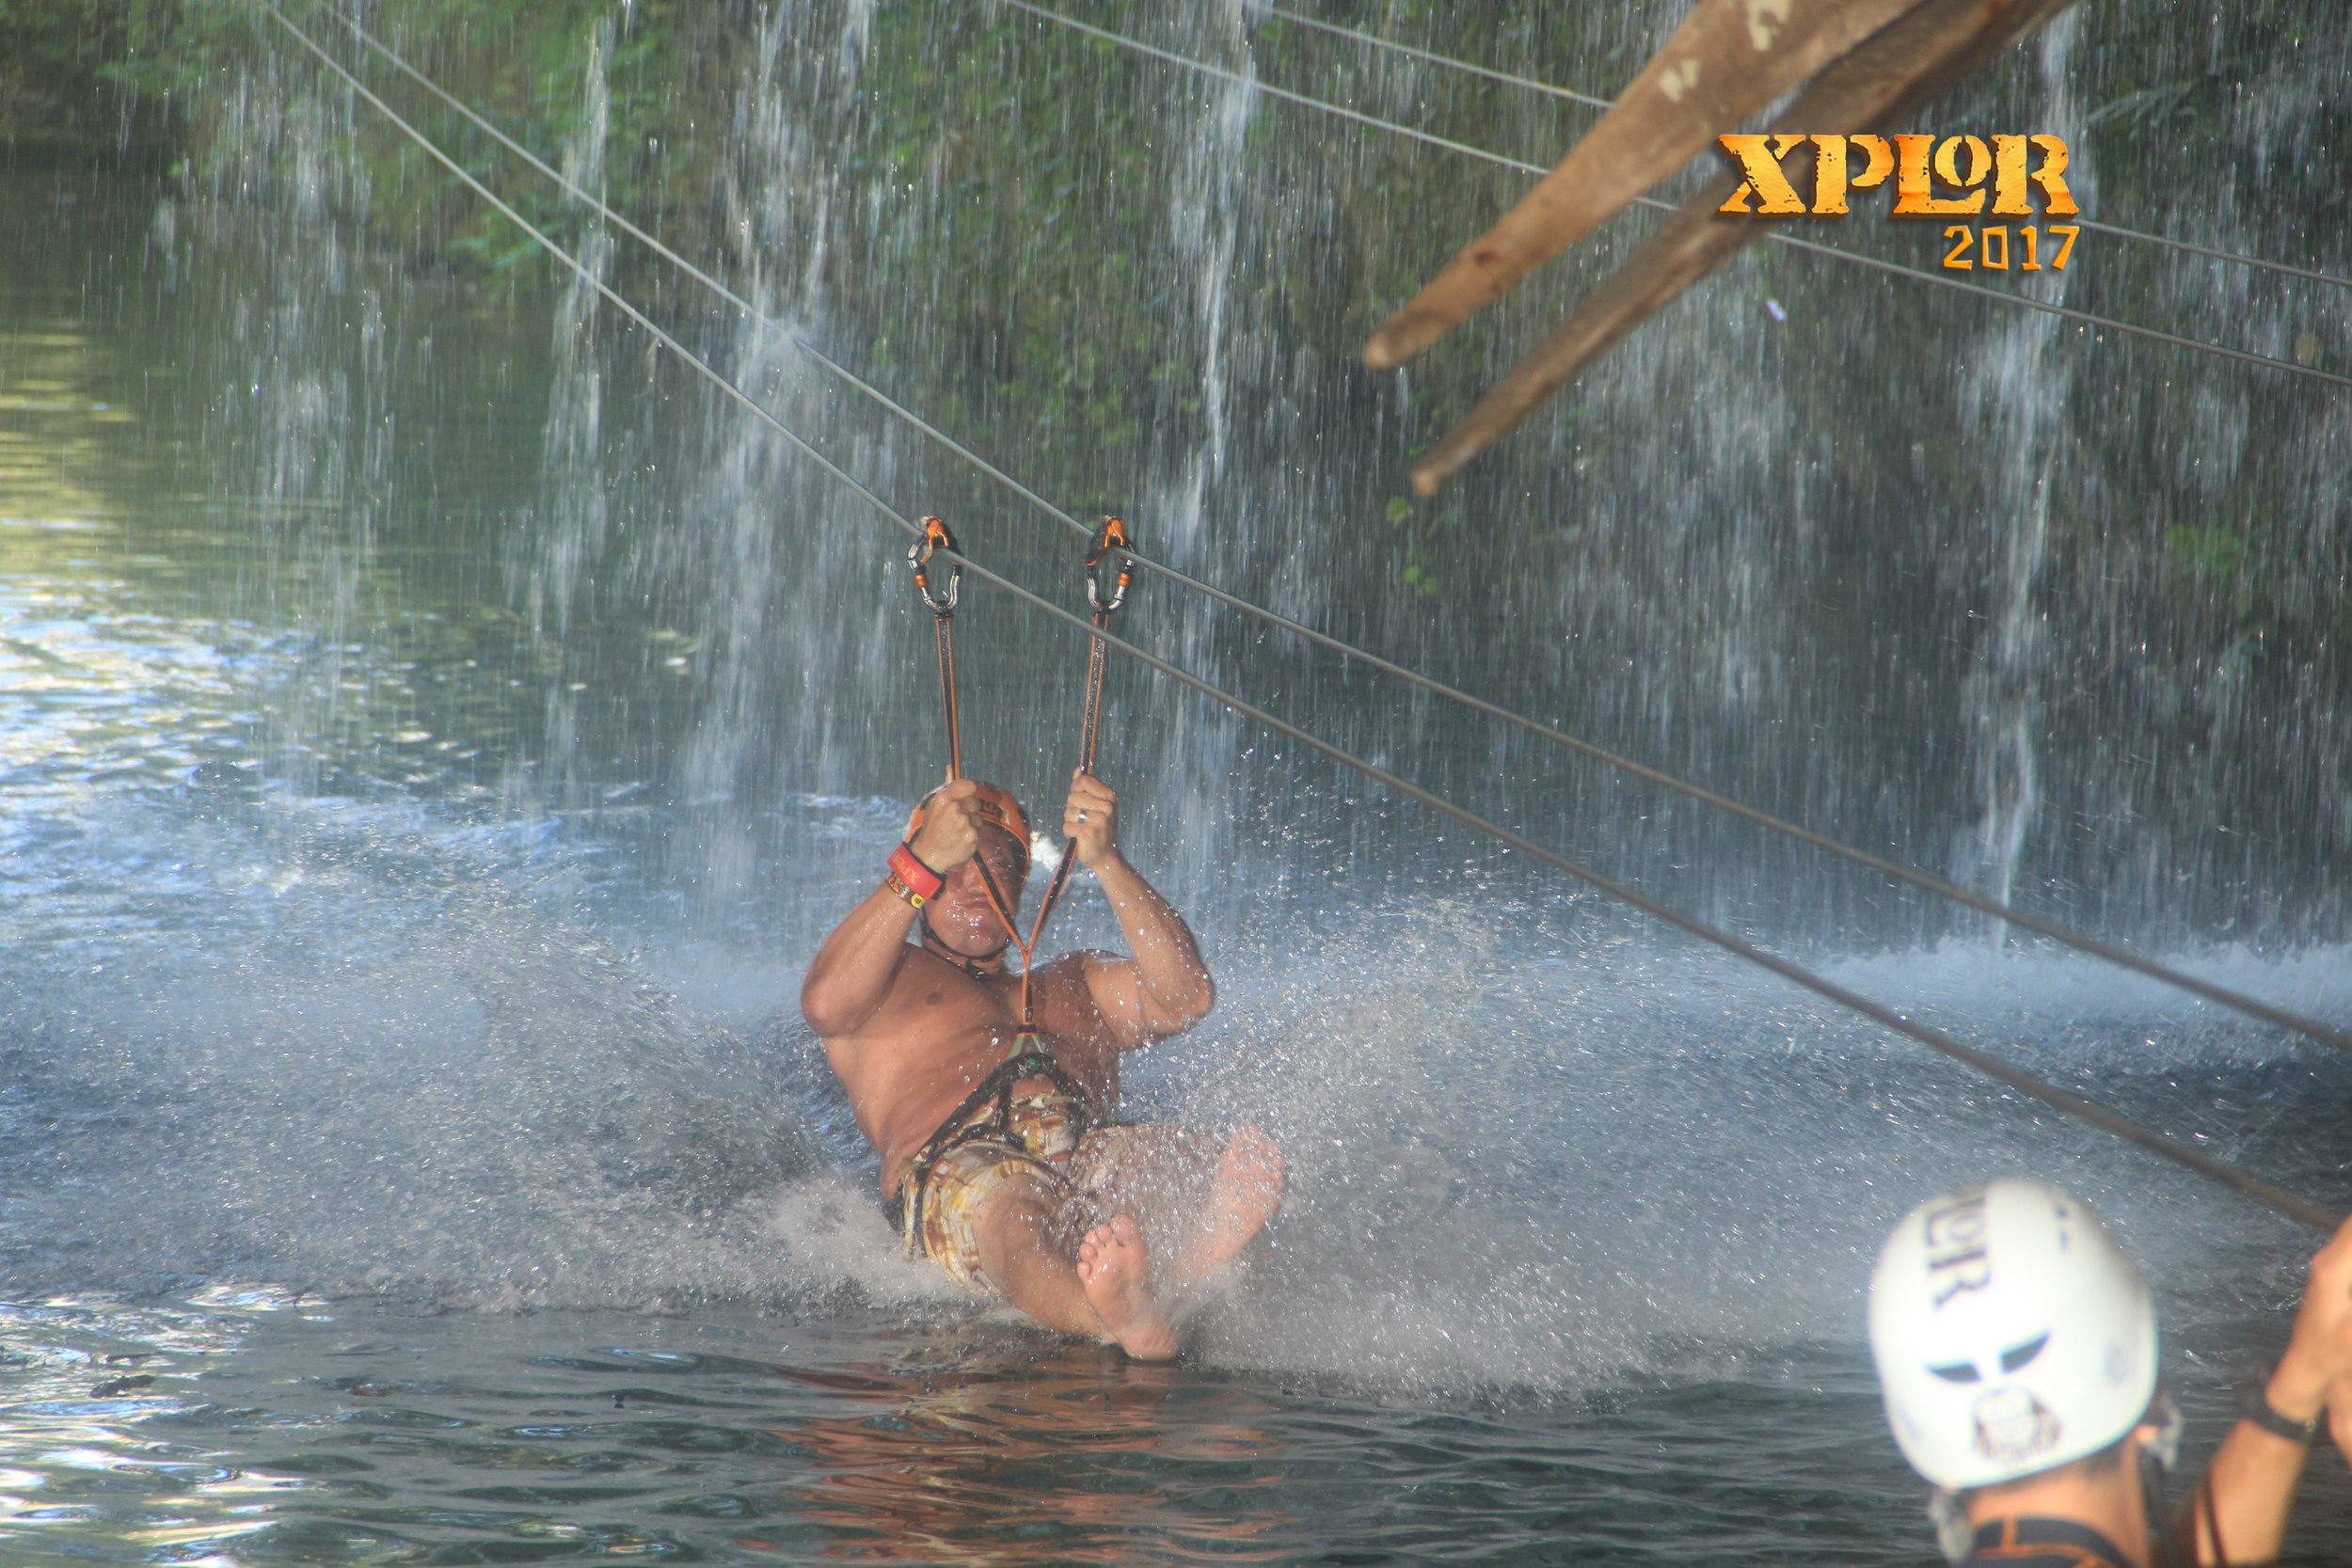 xcaret ziplining, cancun mexico, review of xcaret